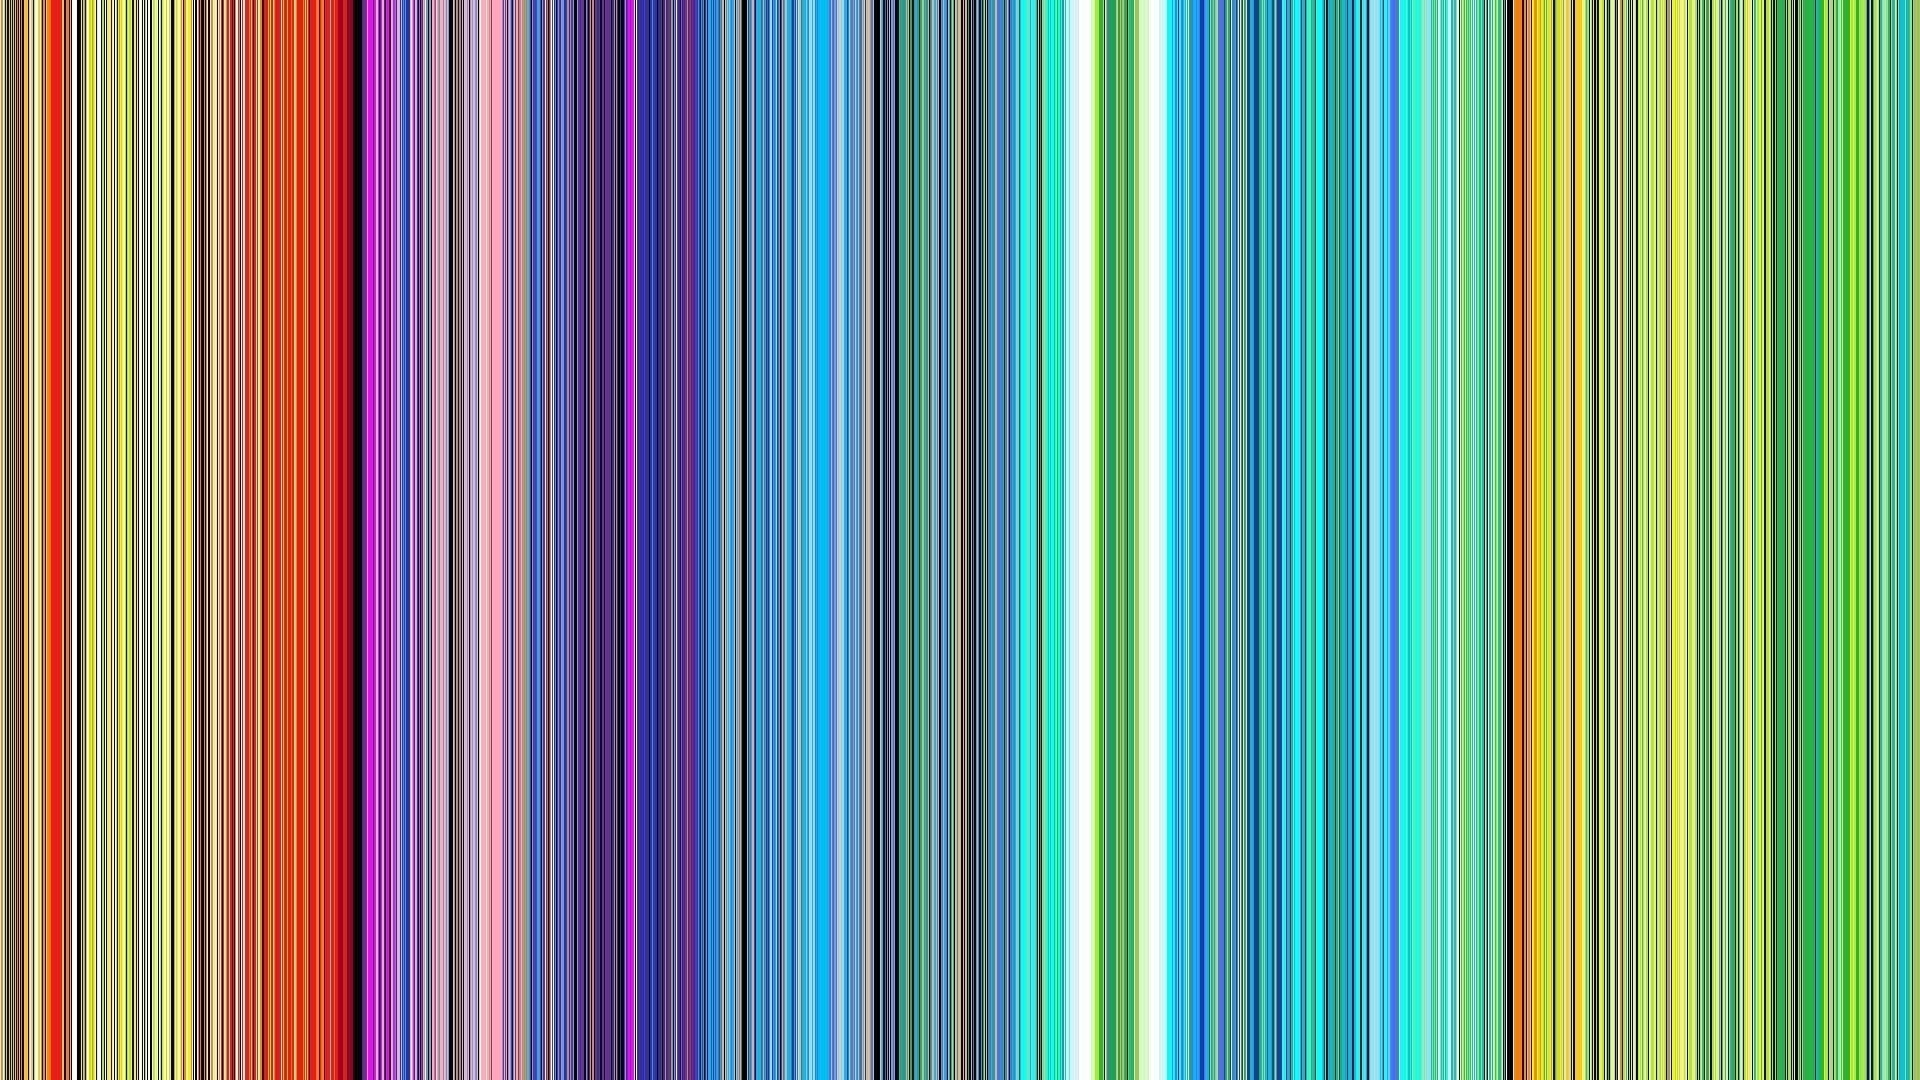 1920x1080 Vertical colors line plain wallpapers